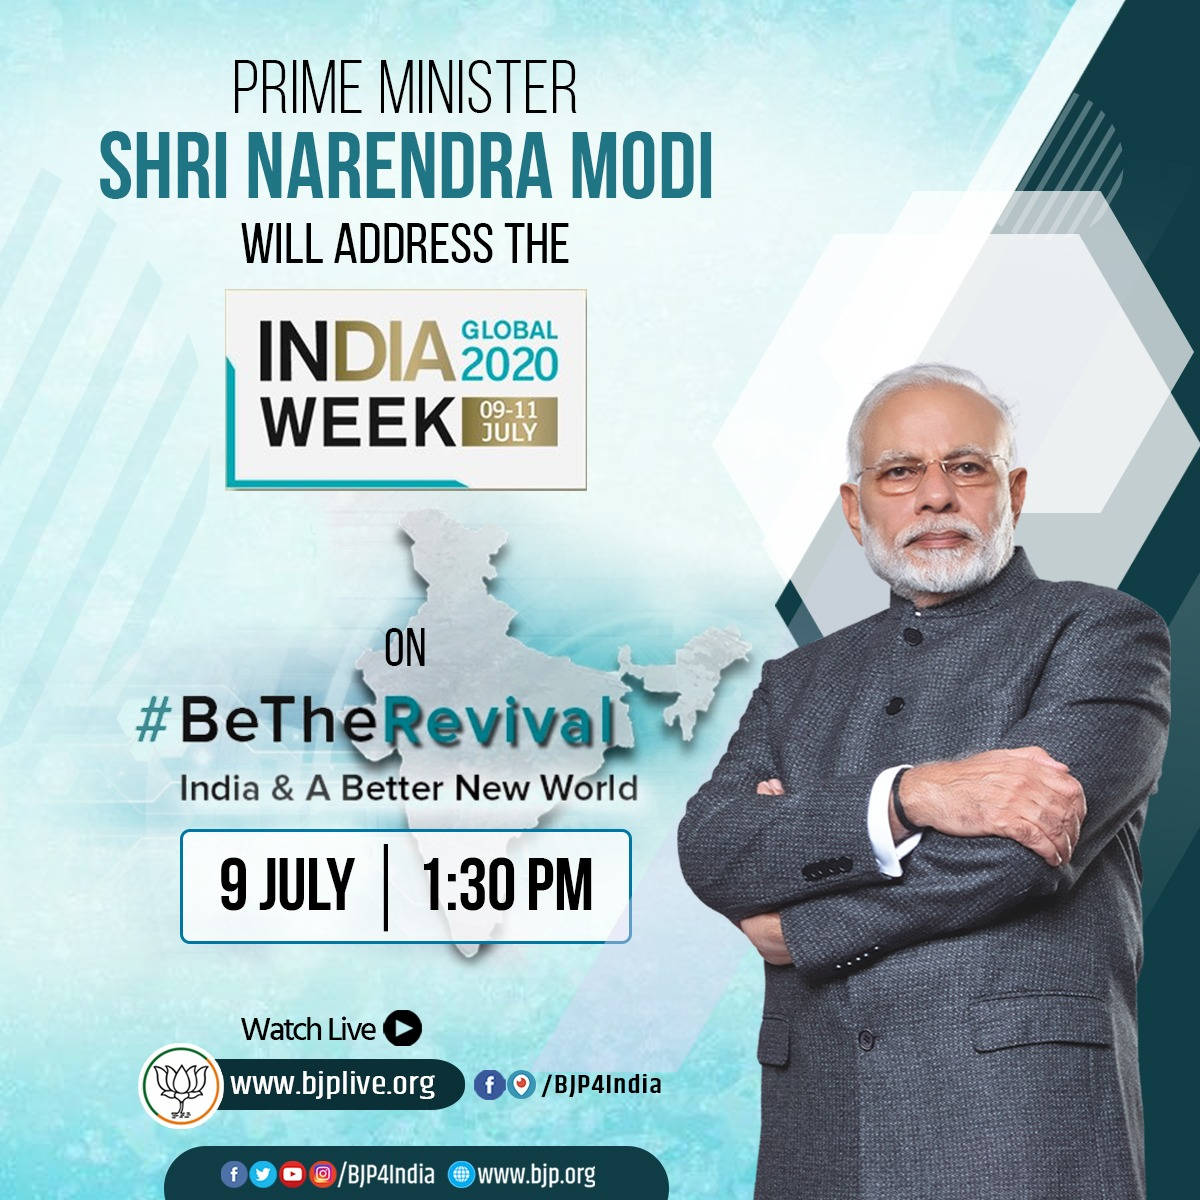 Watch PM Shri @narendramodis inaugural address on Be The Revival at India Global Week 2020 at 1:30 pm on 9th July 2020. LIVE at • facebook.com/BJP4India • pscp.tv/BJP4India • youtube.com/BJP4India • bjplive.org